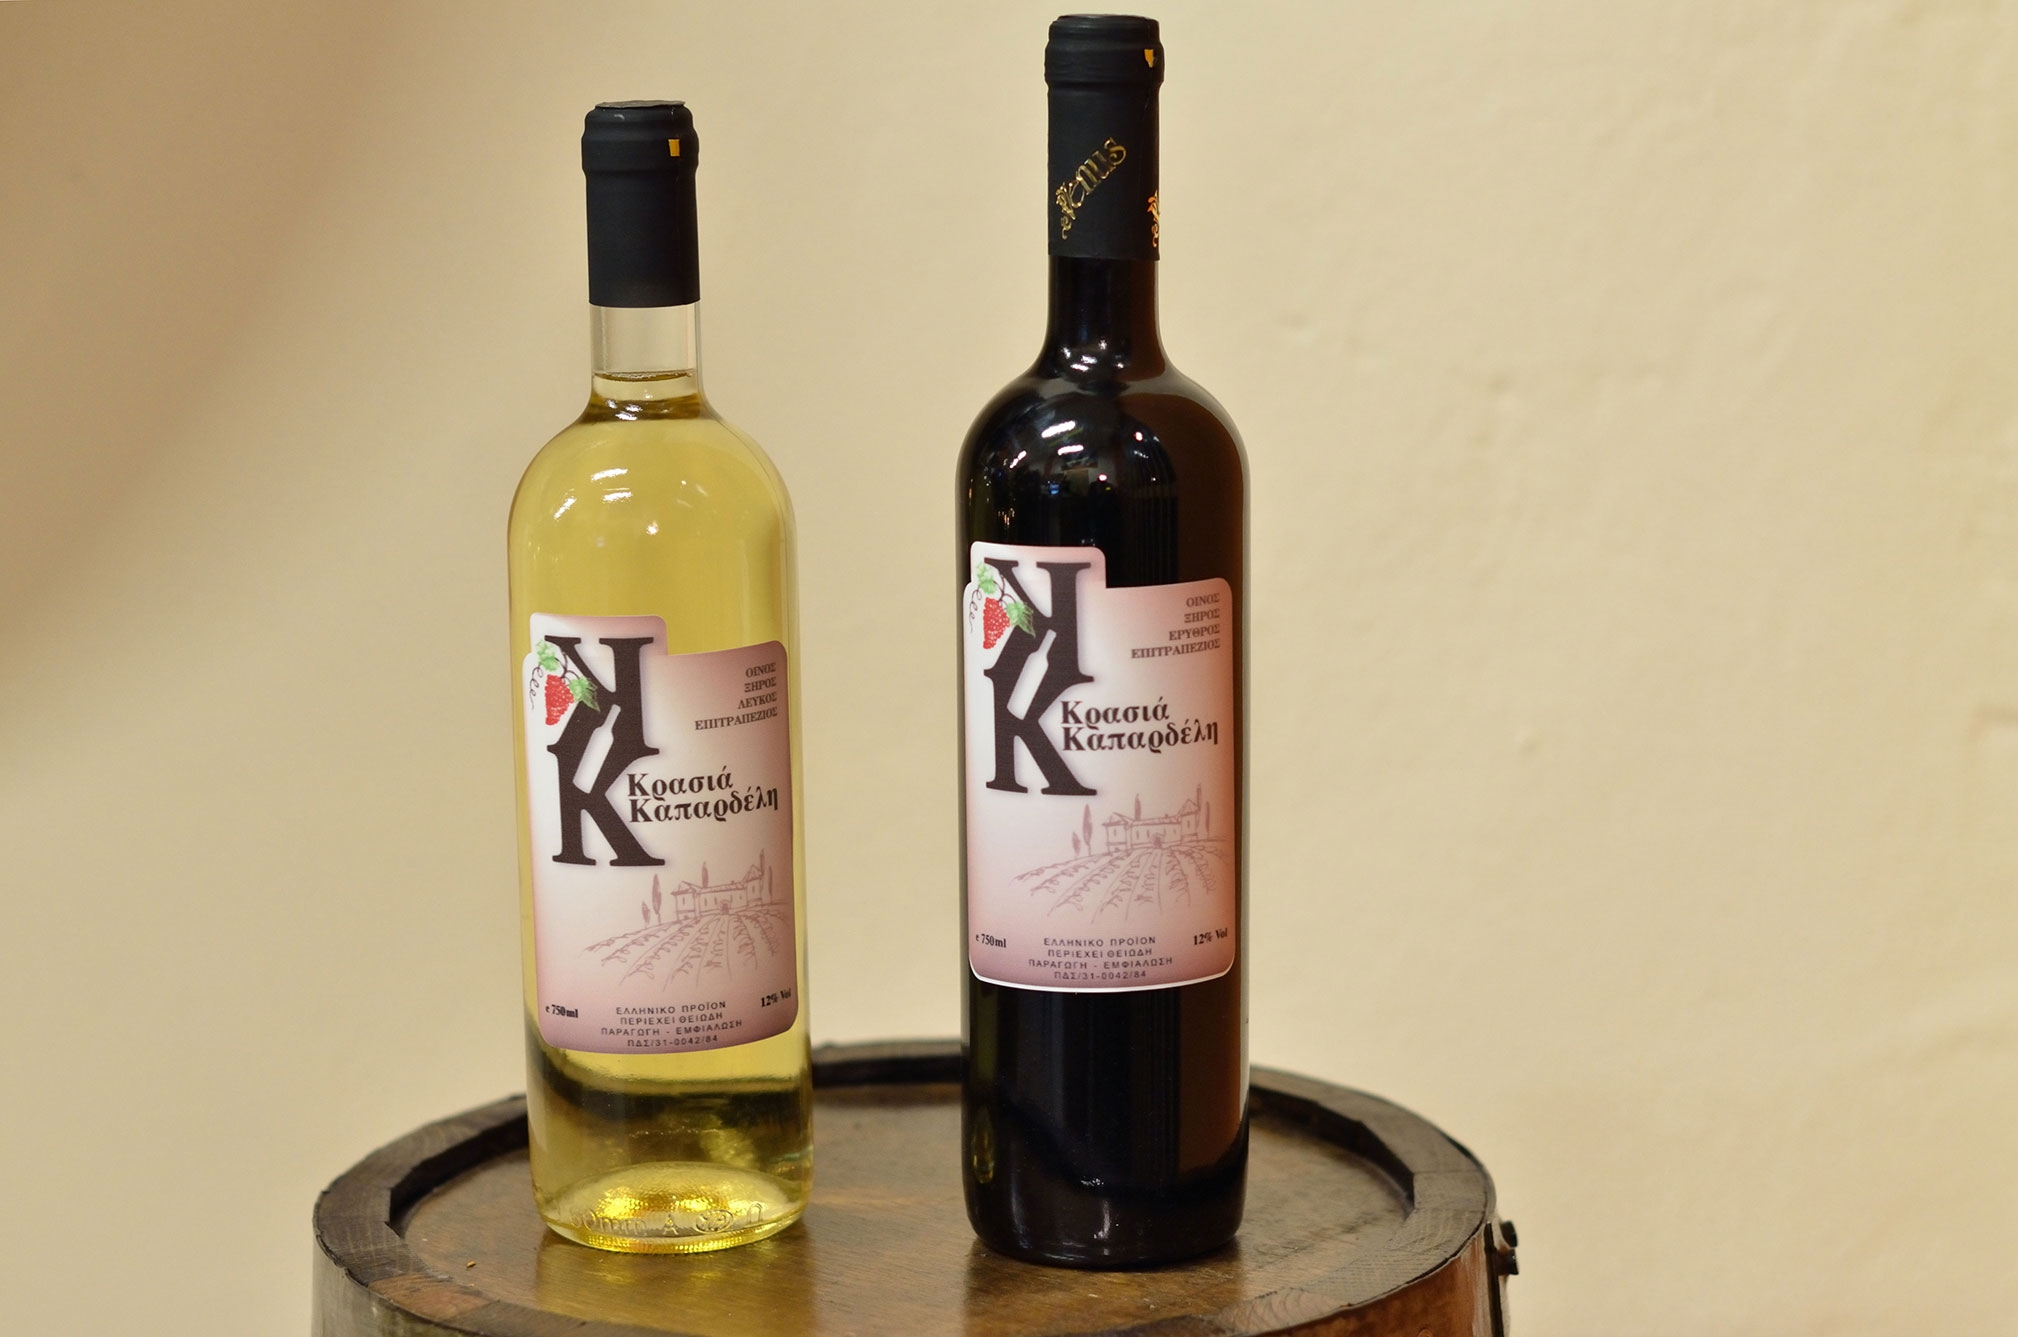 Kapardelis wines